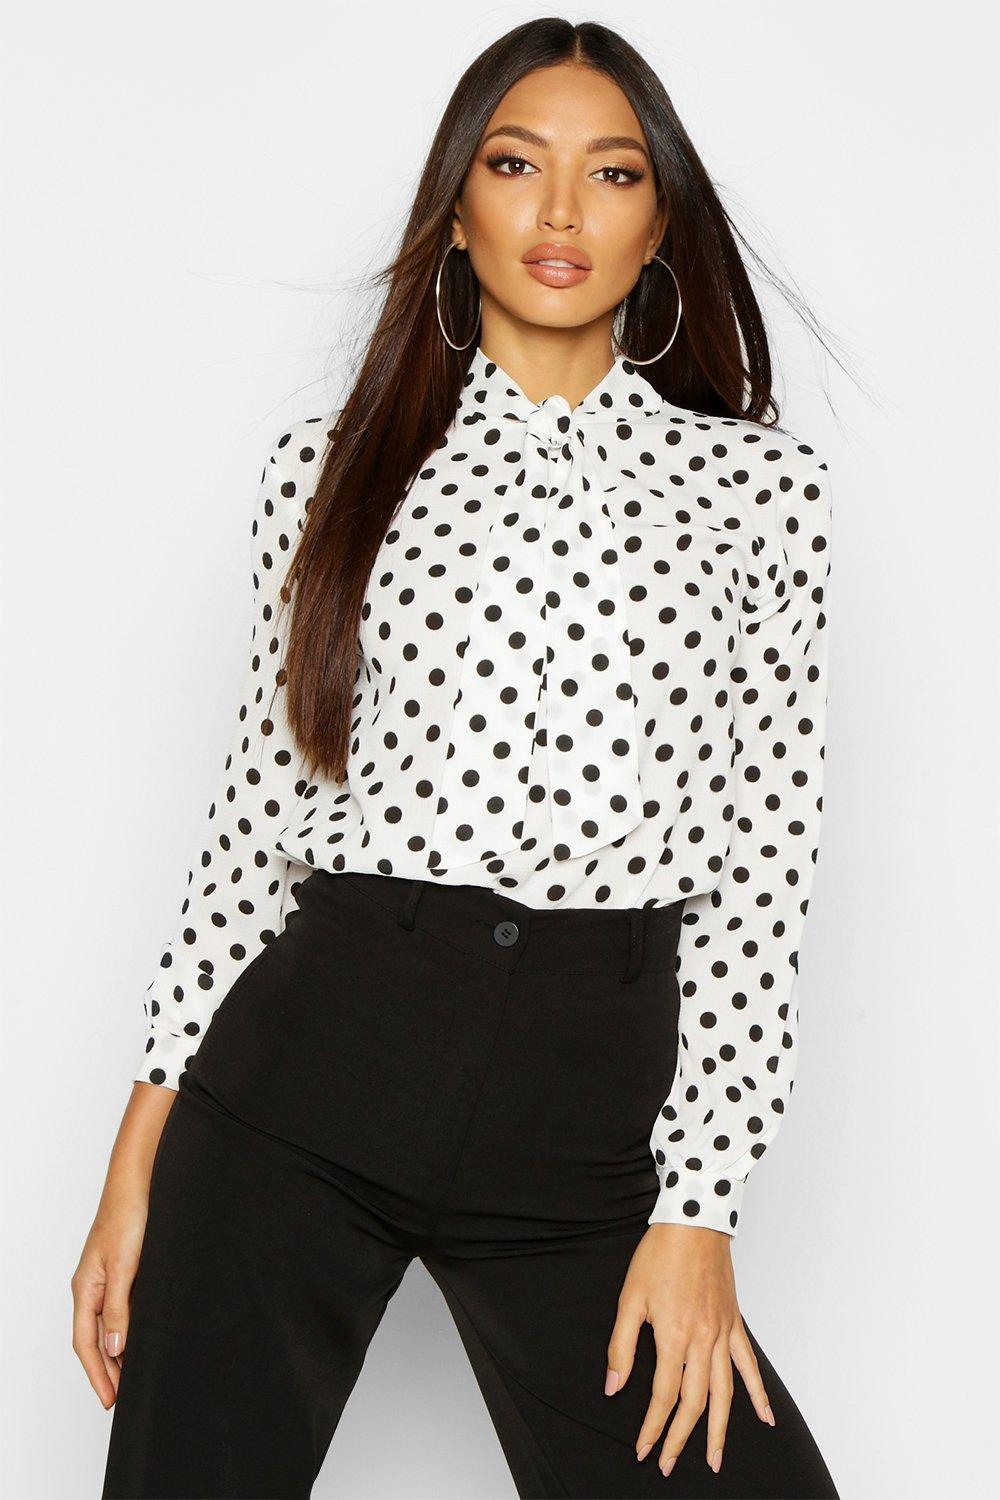 1930s Style Blouses, Shirts, Tops | Vintage Blouses Womens Pussy Bow Polka Dot High Neck Blouse - white - 10 $11.20 AT vintagedancer.com